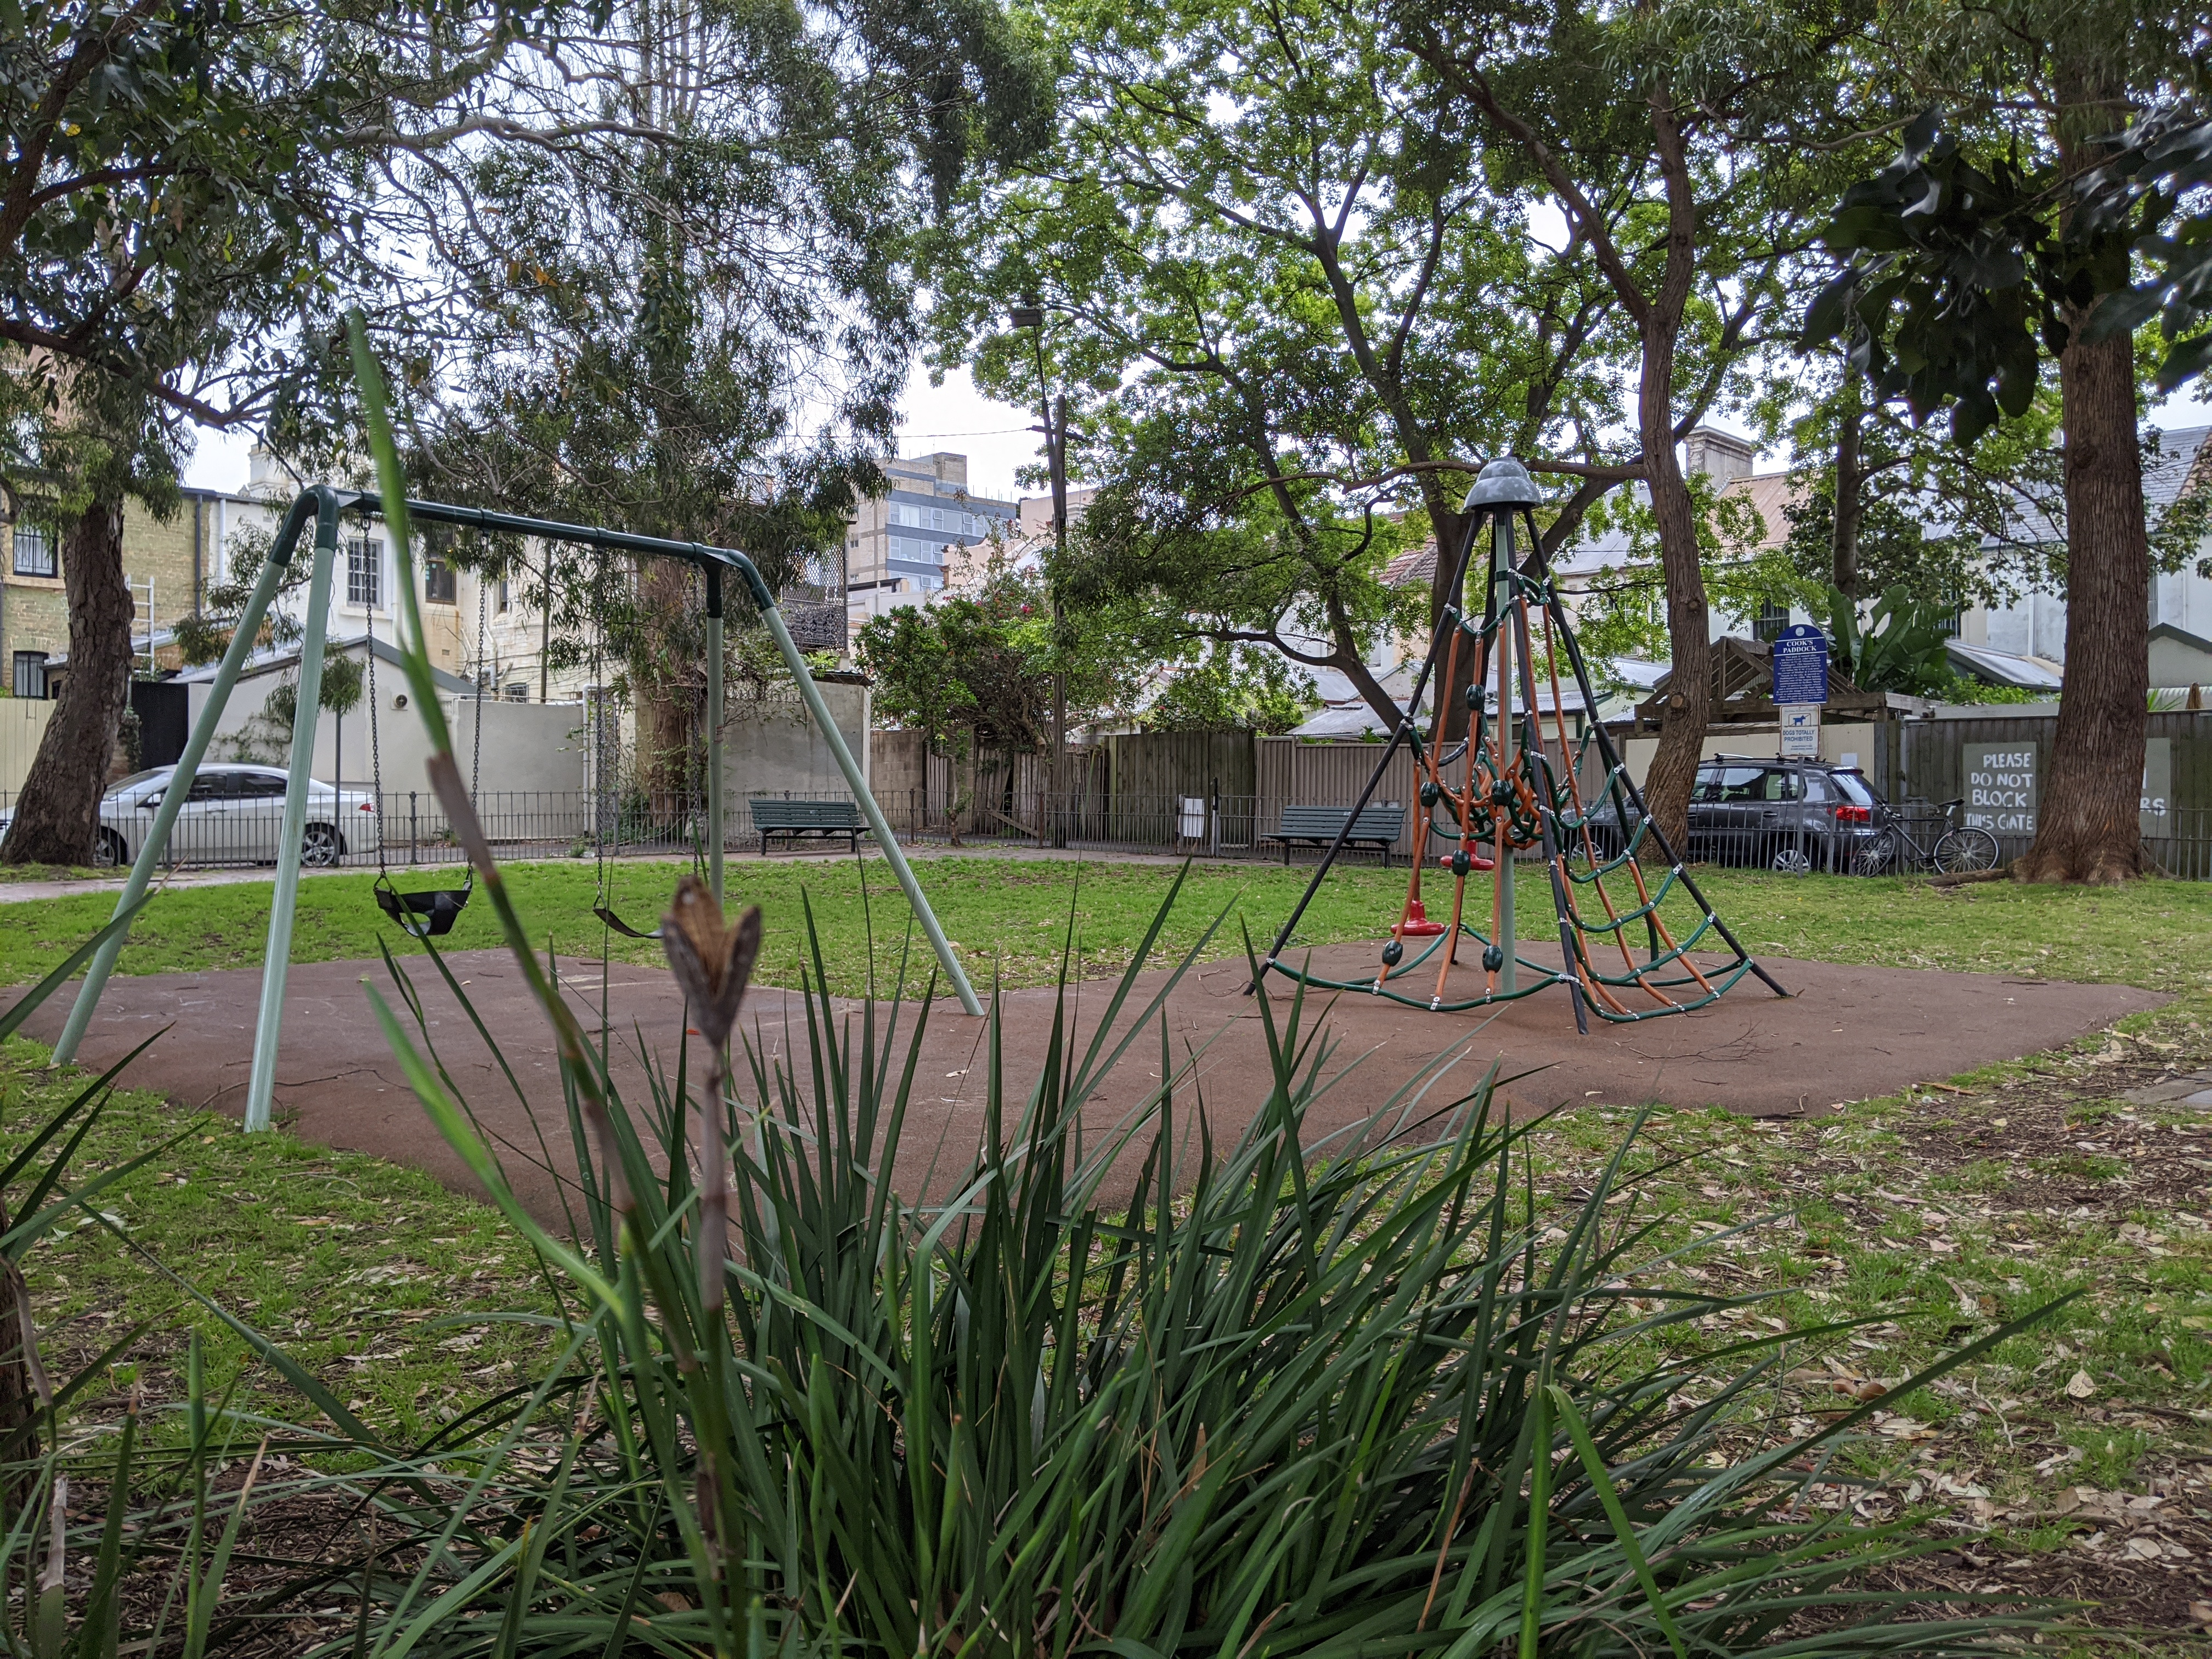 People's Choice Vote: Cook's Paddock Playground Upgrade